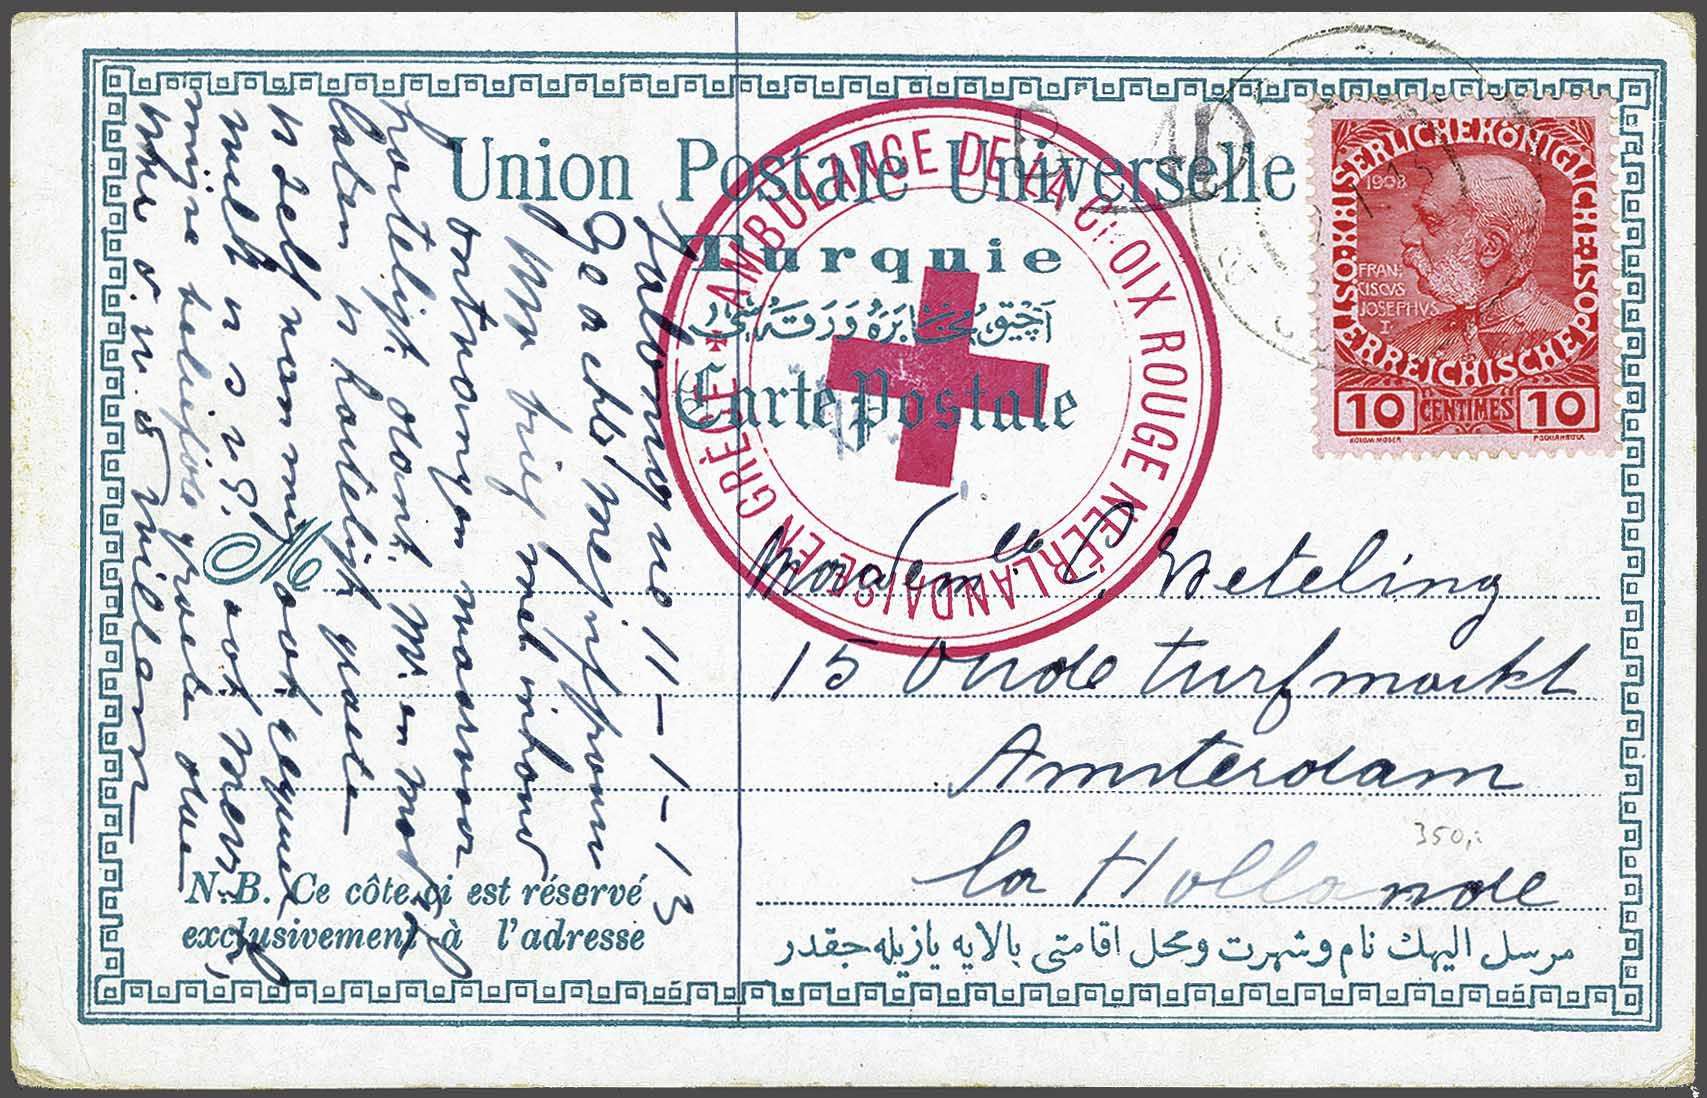 Lot 6 - Austria and former territories austrian levant -  Corinphila Veilingen Auction 244 -Netherlands and former colonies, WW2 Postal History, Bosnia, German and British colonies, Egypt. - Day 1